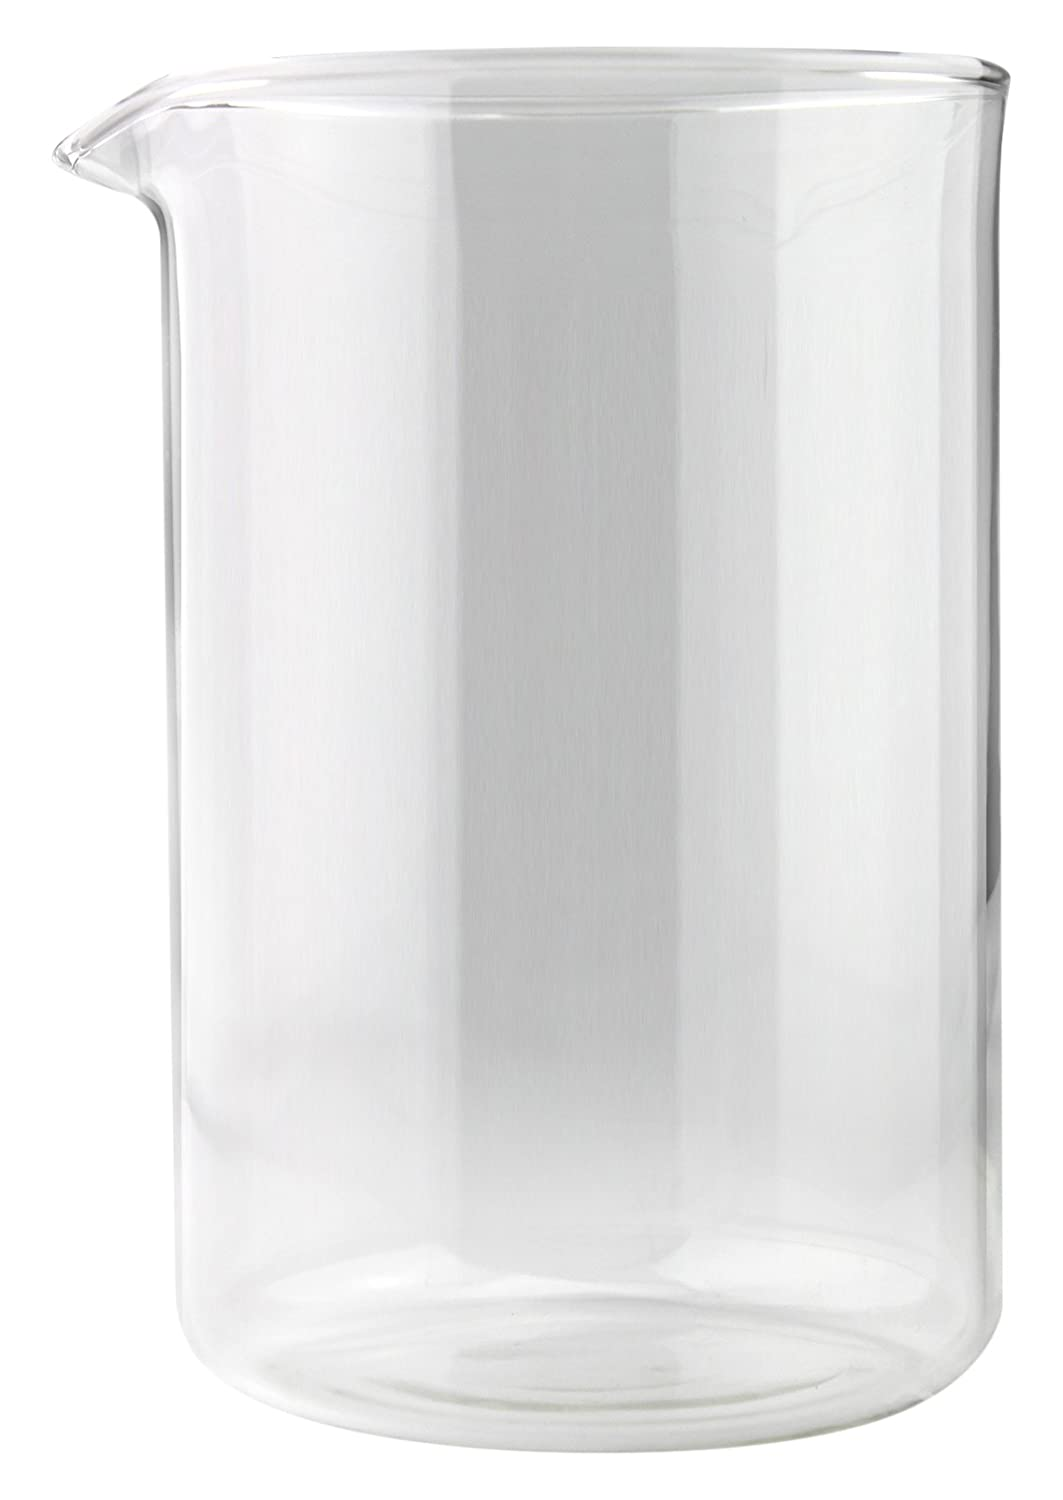 Café Ole Cup Spare Replacement Glass Beaker Suitable For Grunwerg Classic Cafe Ole Cafetieres, 6 Cup TM08/GL